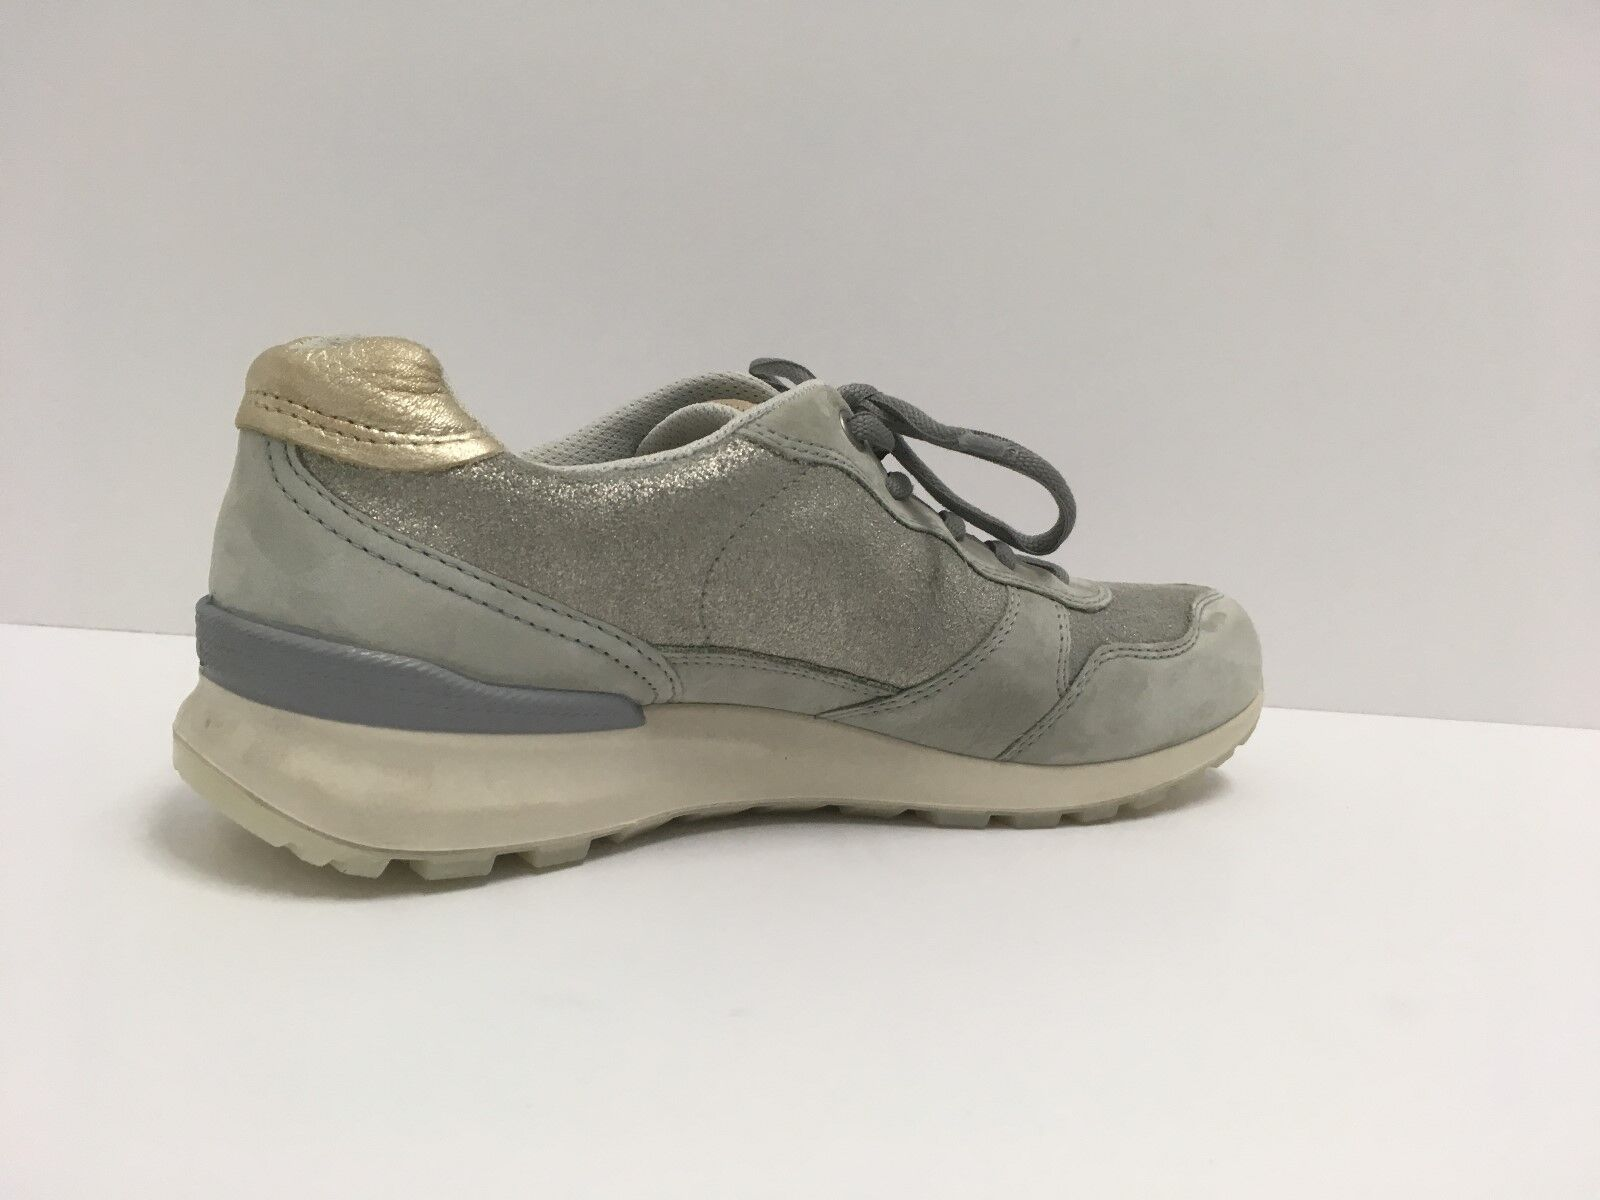 Ecco  Womens ECCO CS14 CS14 CS14 Retro Casual Sneaker Oxford Size 40 EUR 9-9.5 US EUC a9db3d